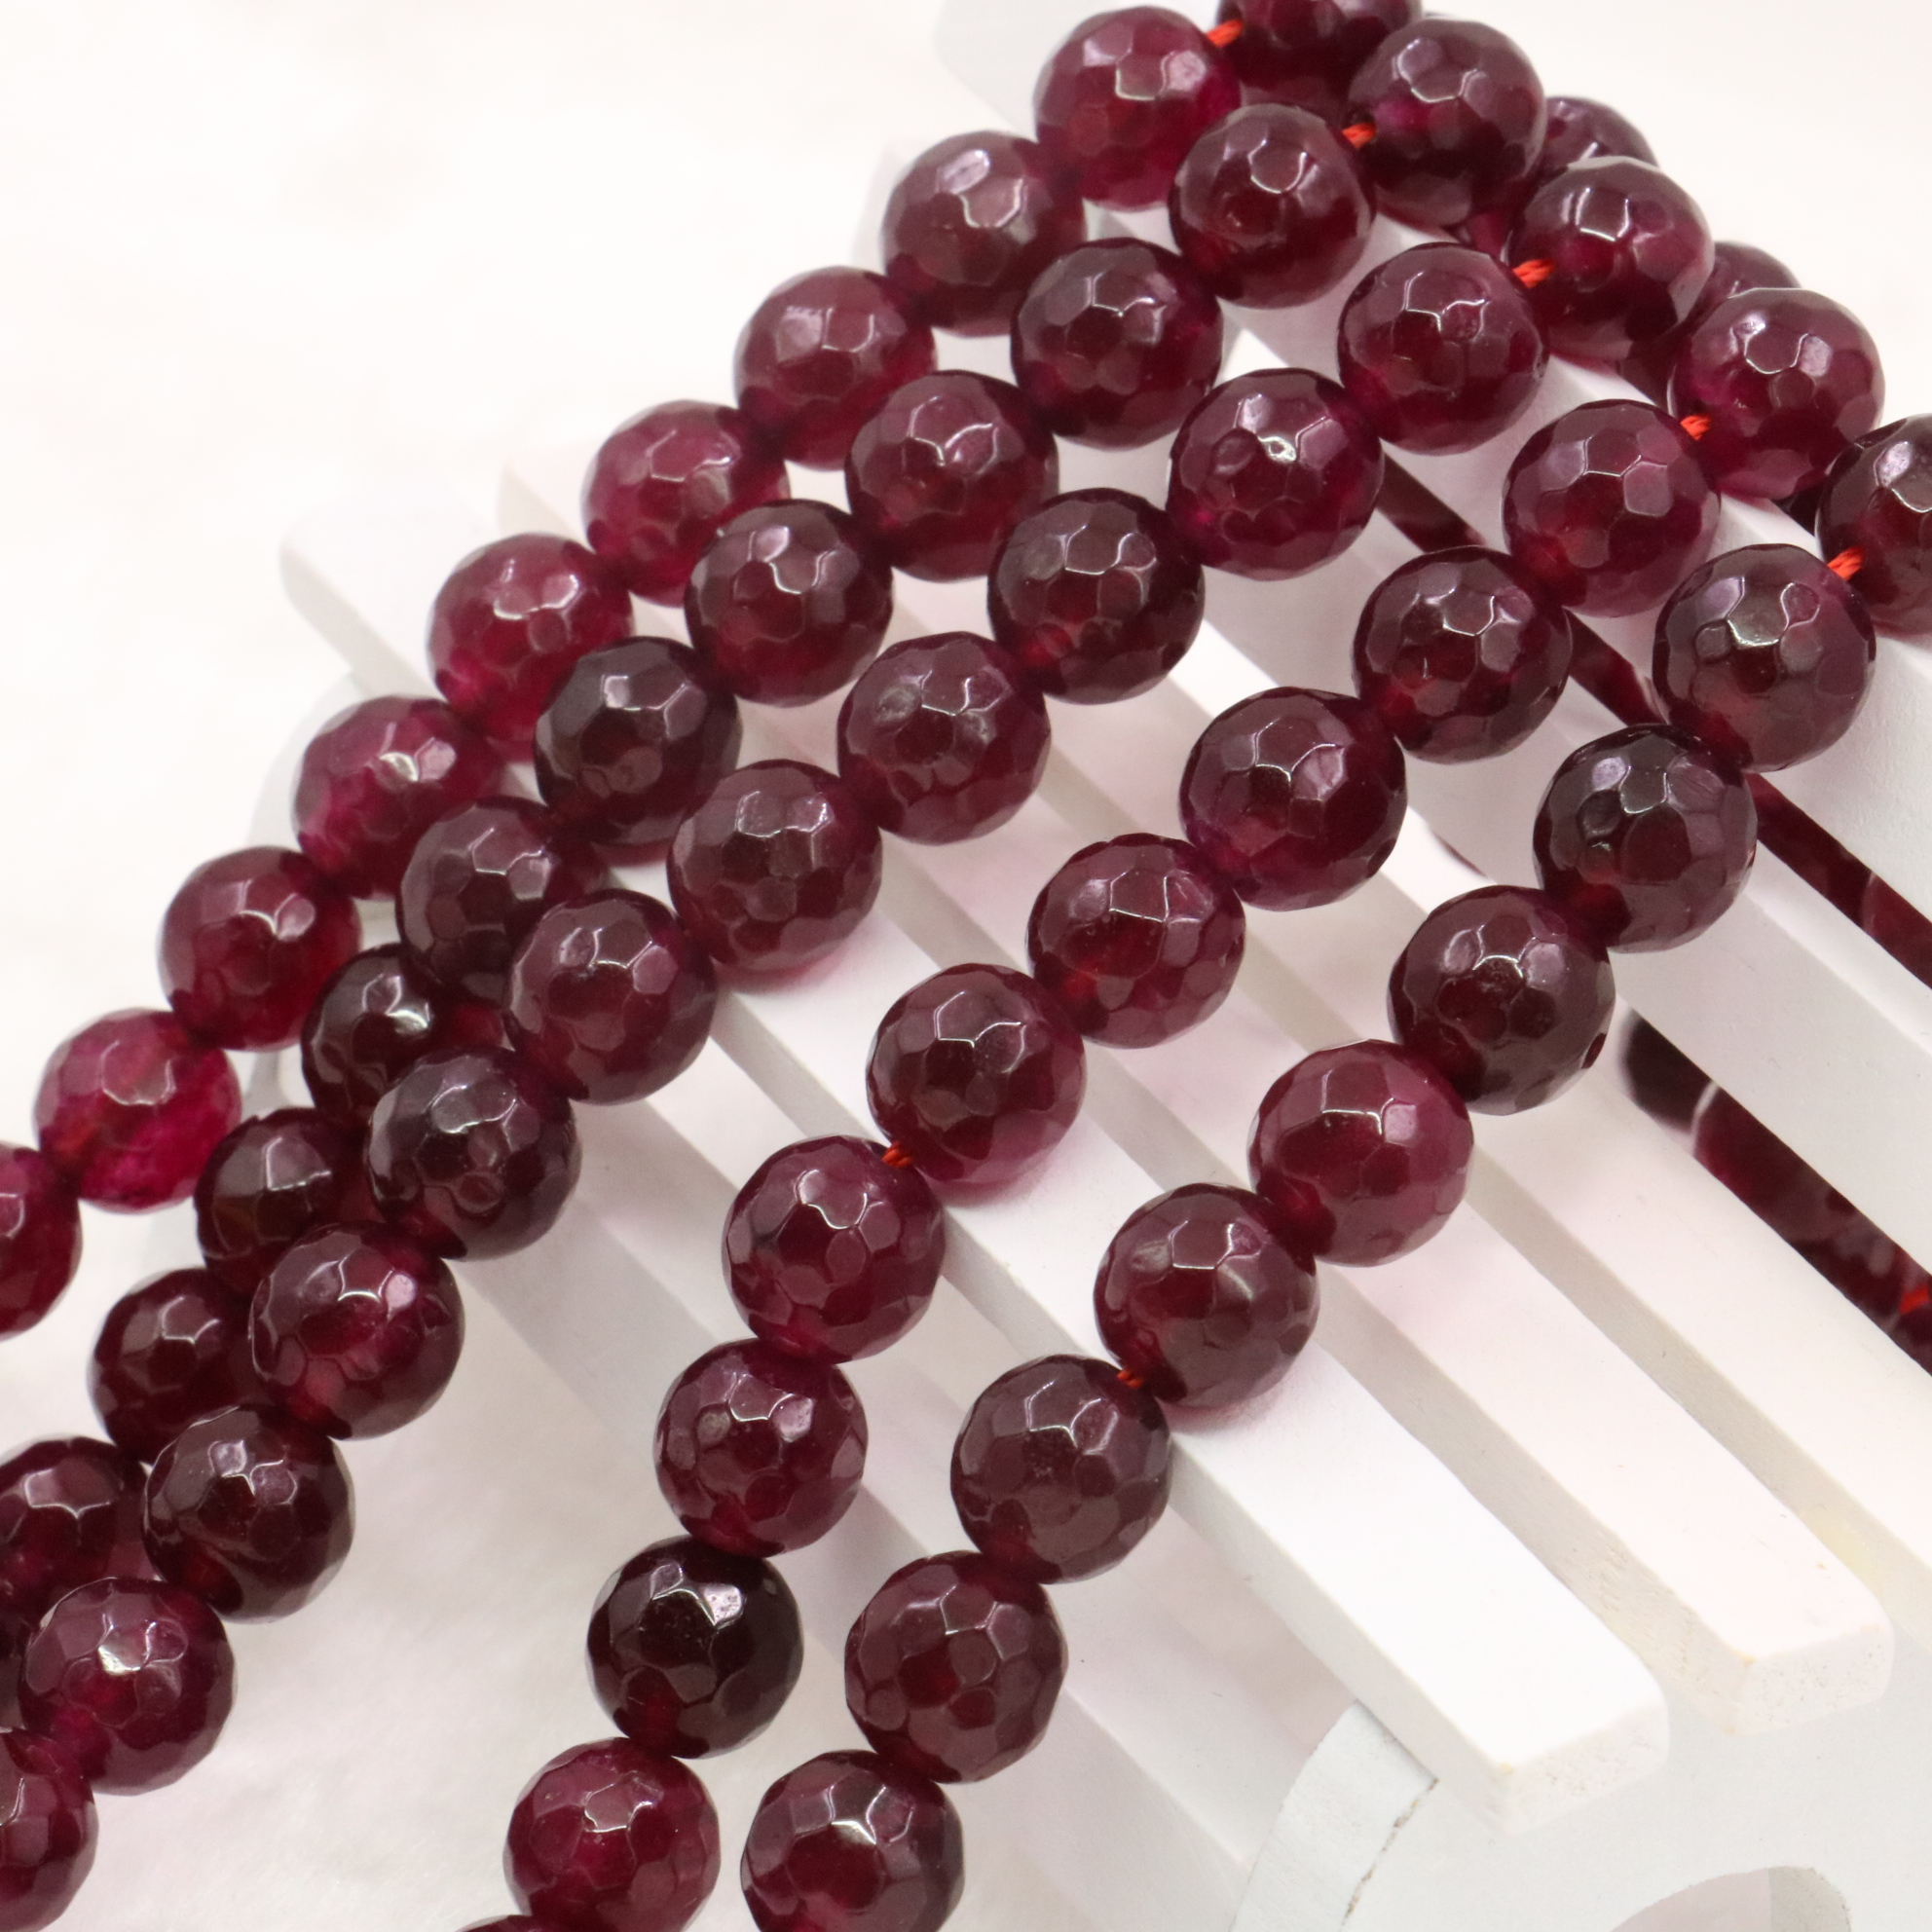 12mm Natural Carnelian Red Ruby Round Loose Beads Gemstones